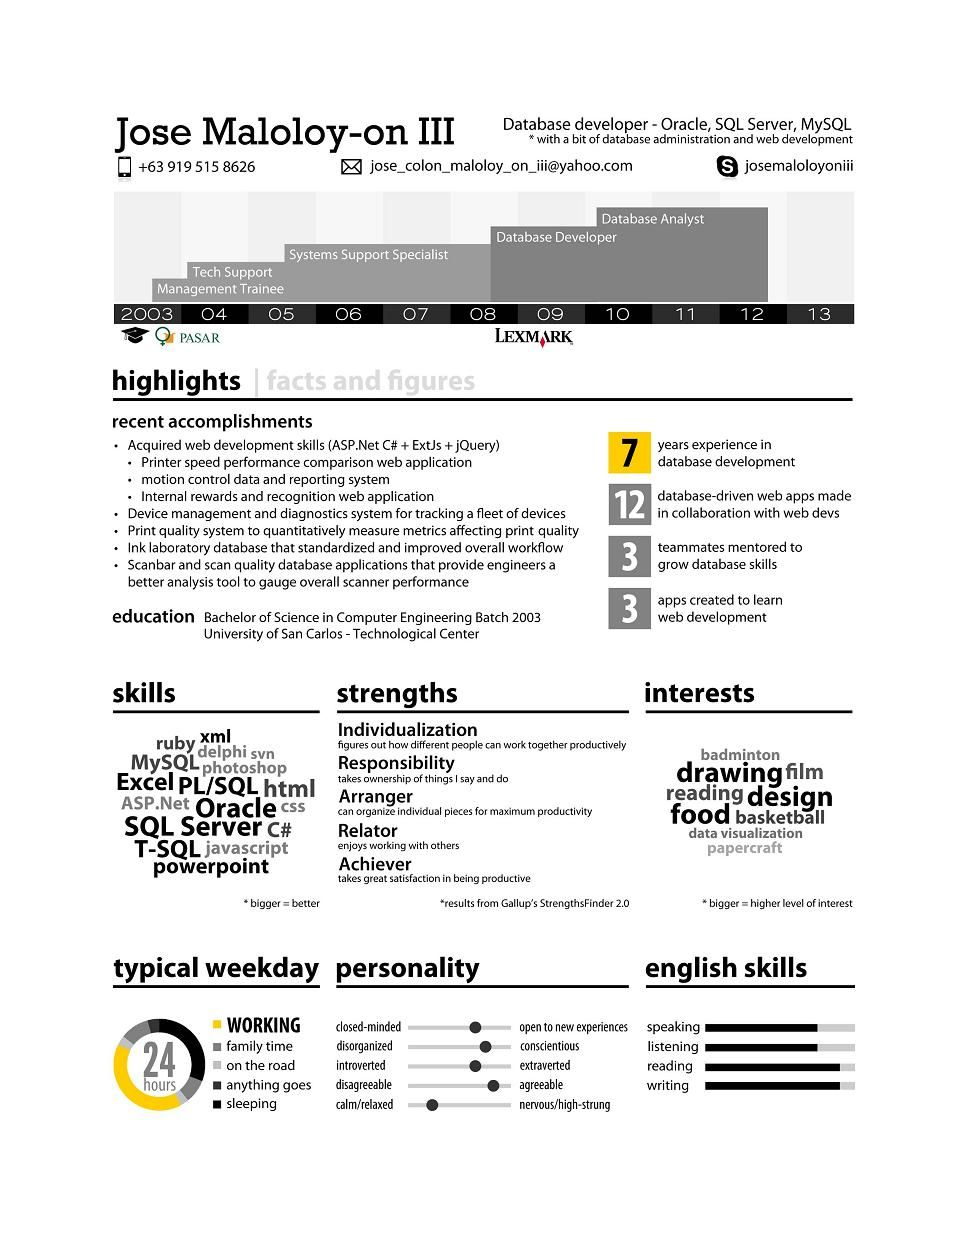 infographic resume of jose maloloy on iii database analystdeveloper with secondary skills